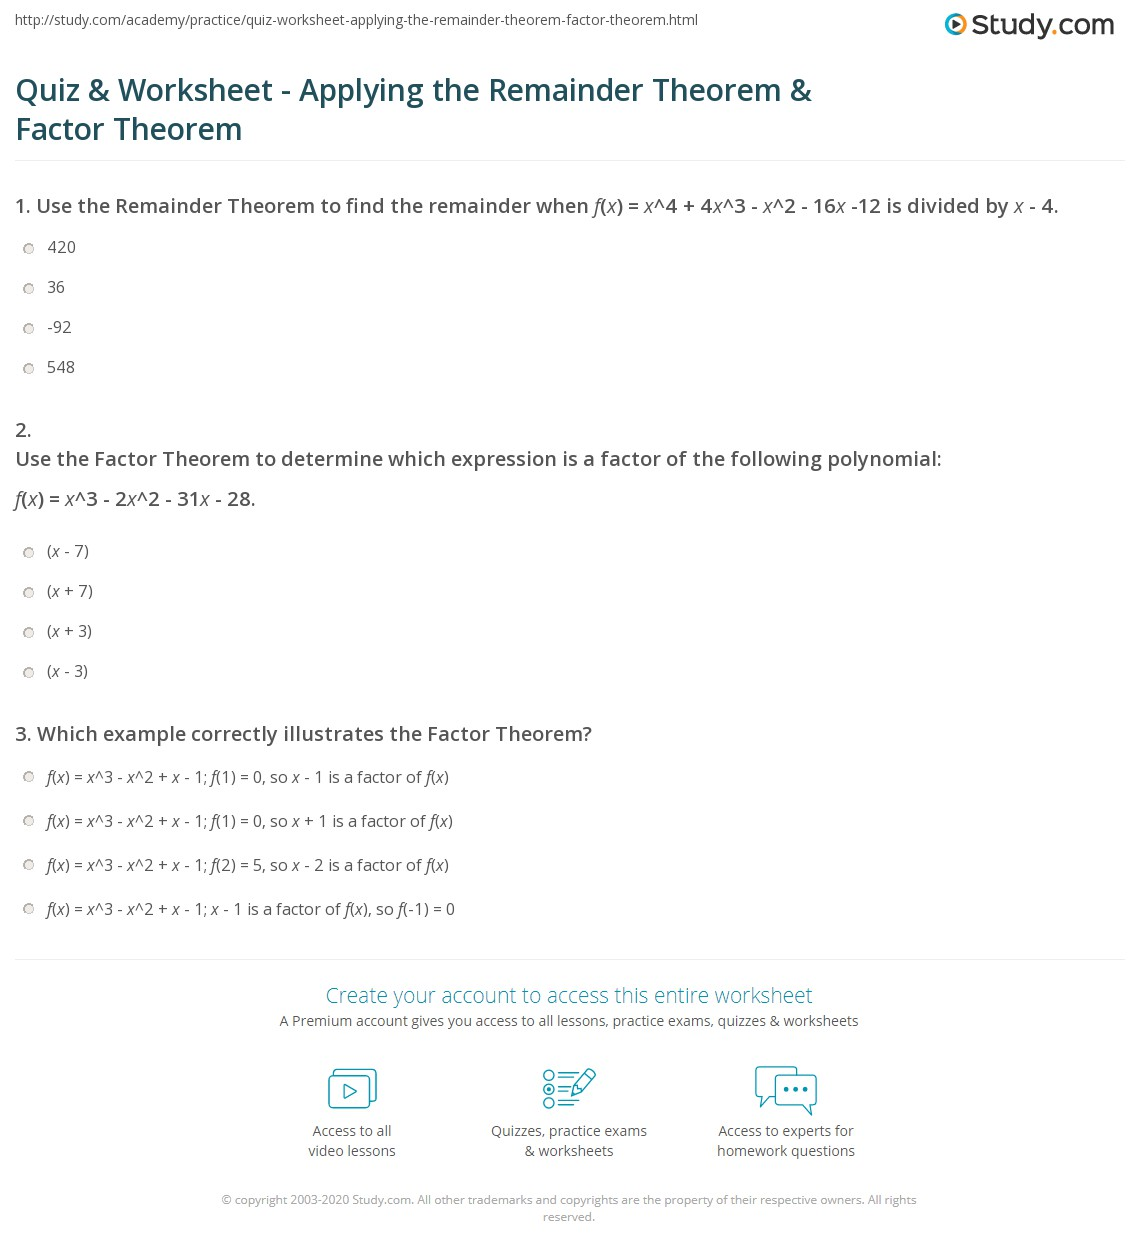 Quiz Worksheet Applying The Remainder Theorem Factor Theorem